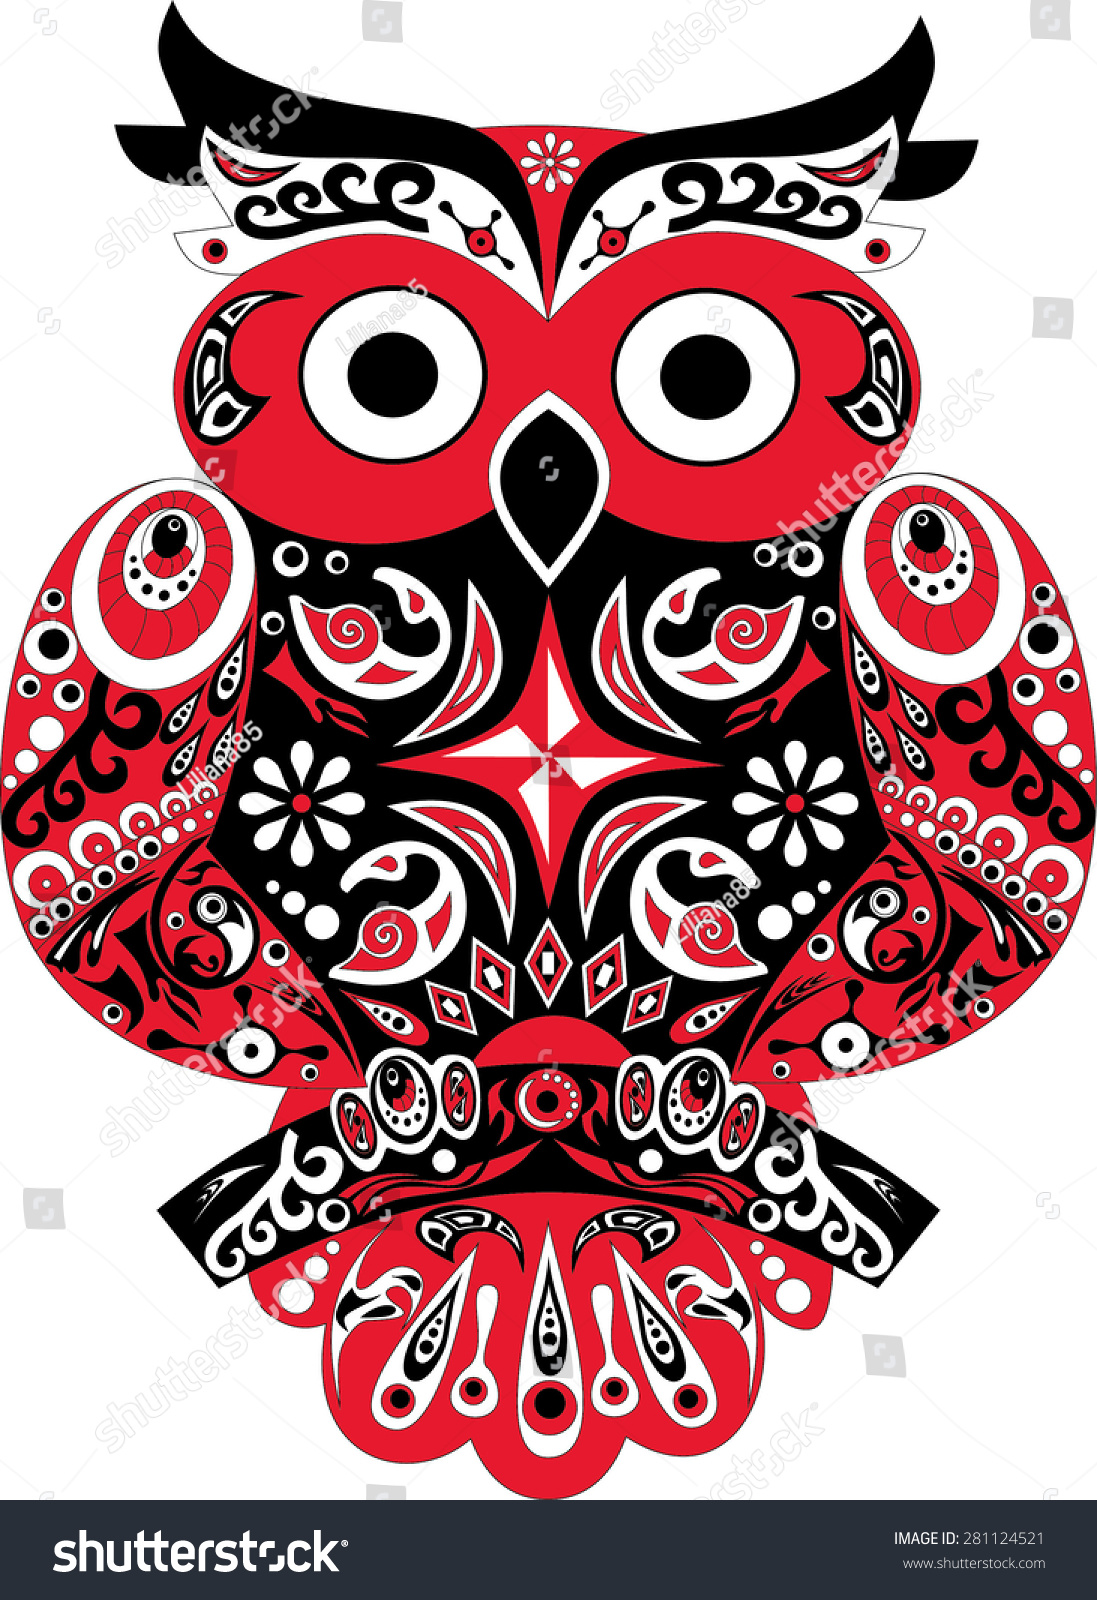 Owl Bird Eagle Owl Animal Black Stock Illustration 281124521 ...